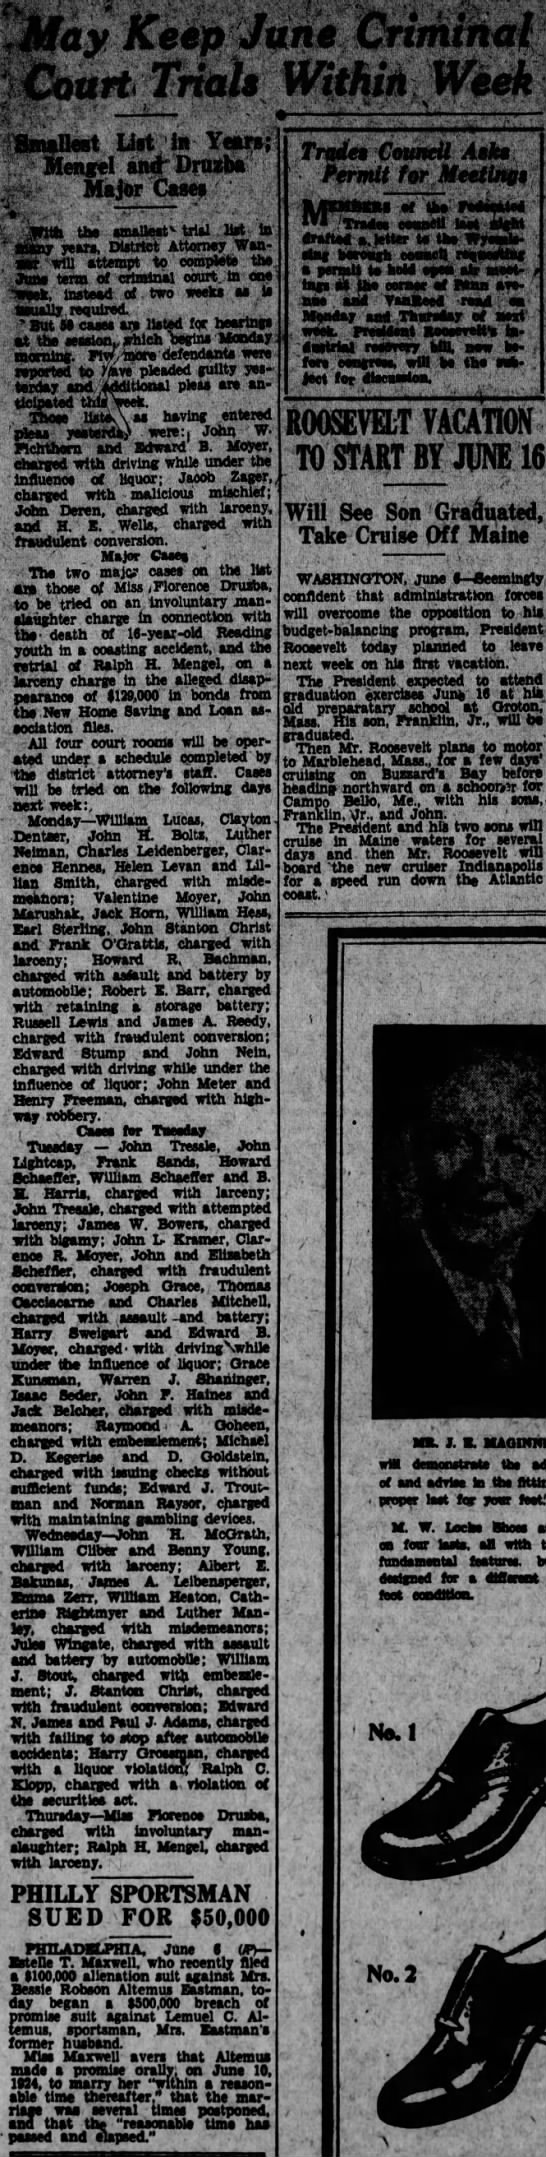 1933-06-07 - James William Bowers - Reading Times p 3 col 1 - Bigamy Charge -